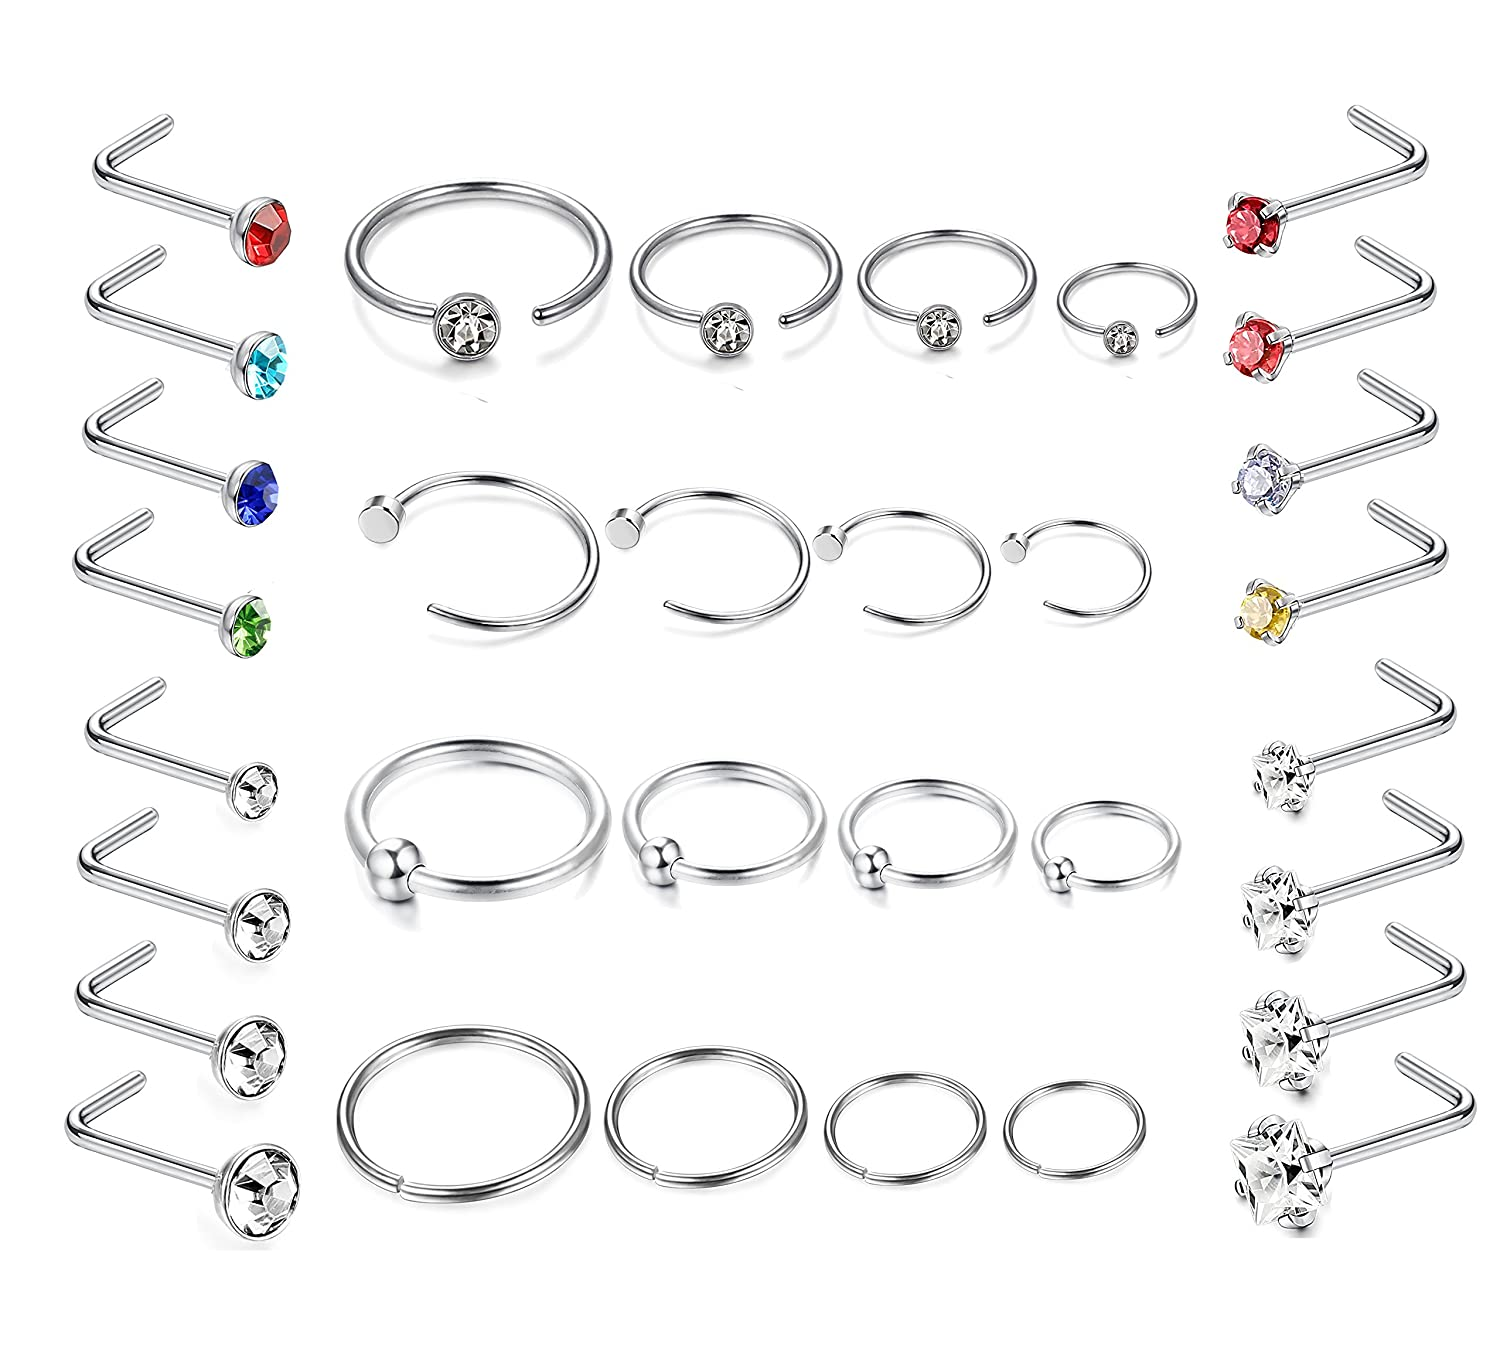 Jstyle 32Pcs Stainless Steel Nose Ring CZ Stud Ring Hoop Body Piercing for Women Girl WCC77C-32